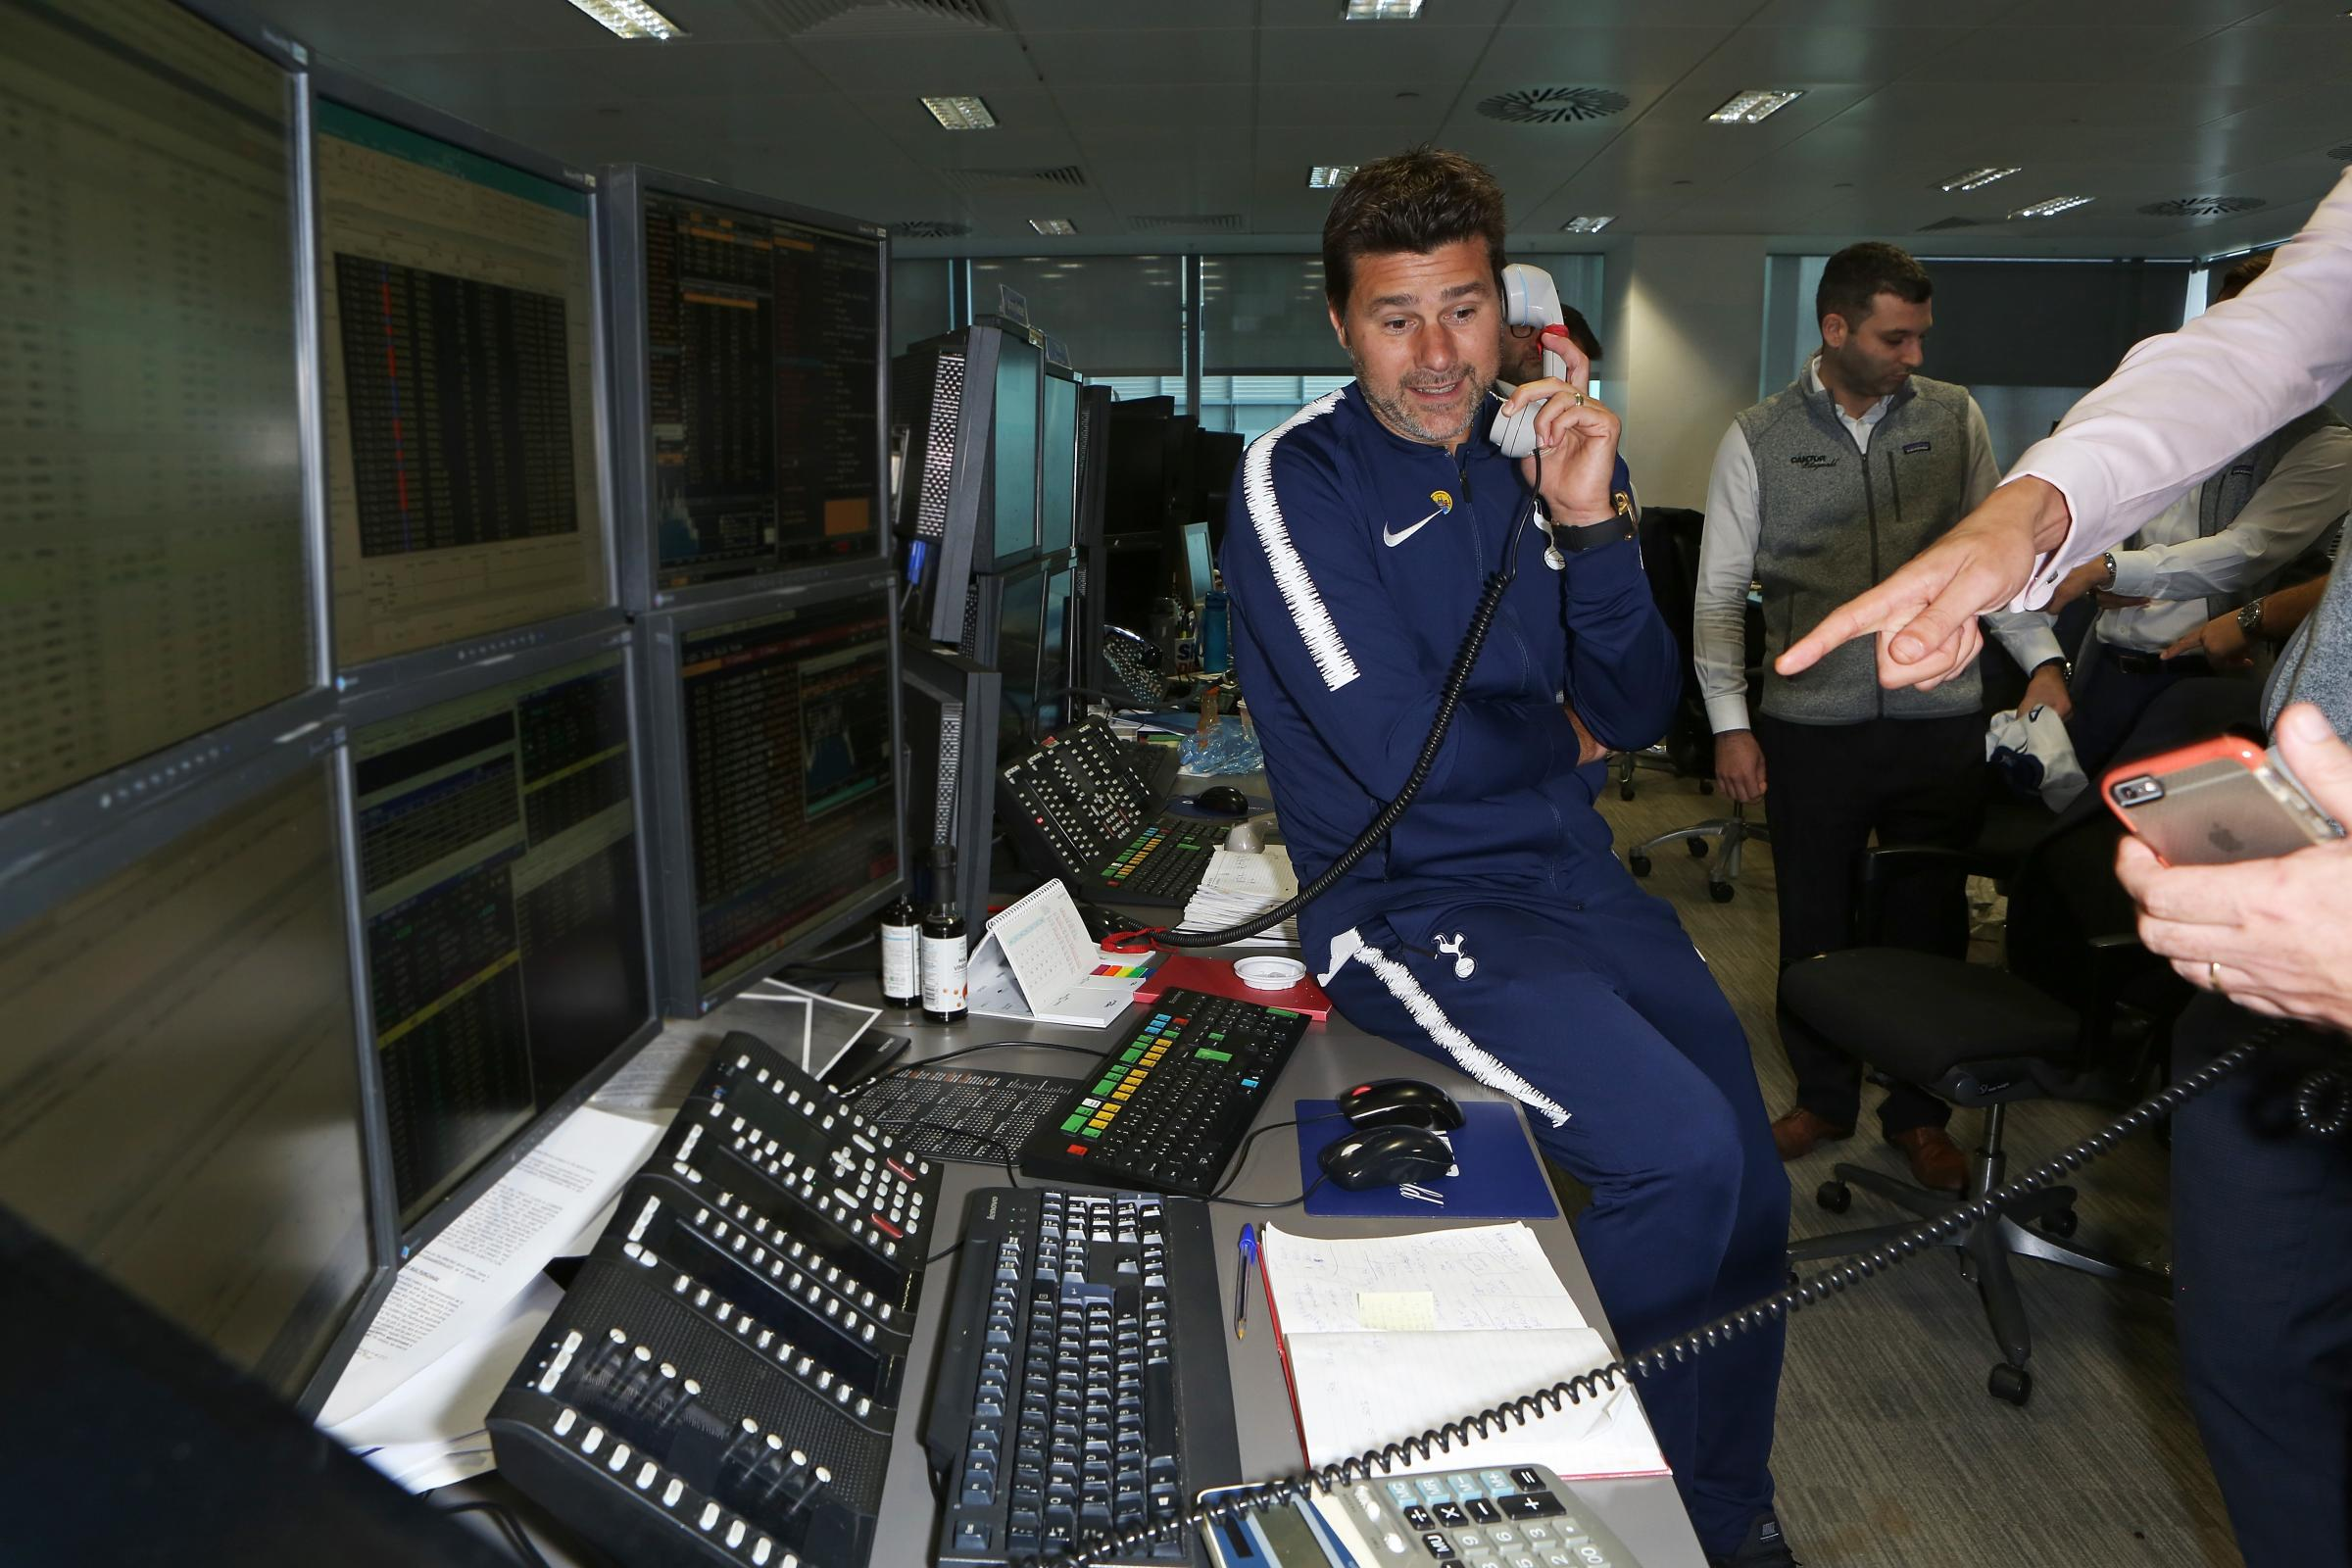 Mauricio Pochettino test at the annual BGC Partners and Cantor Fitzgerald Charity Day to help raise money for Noah's Ark Children's Hospice